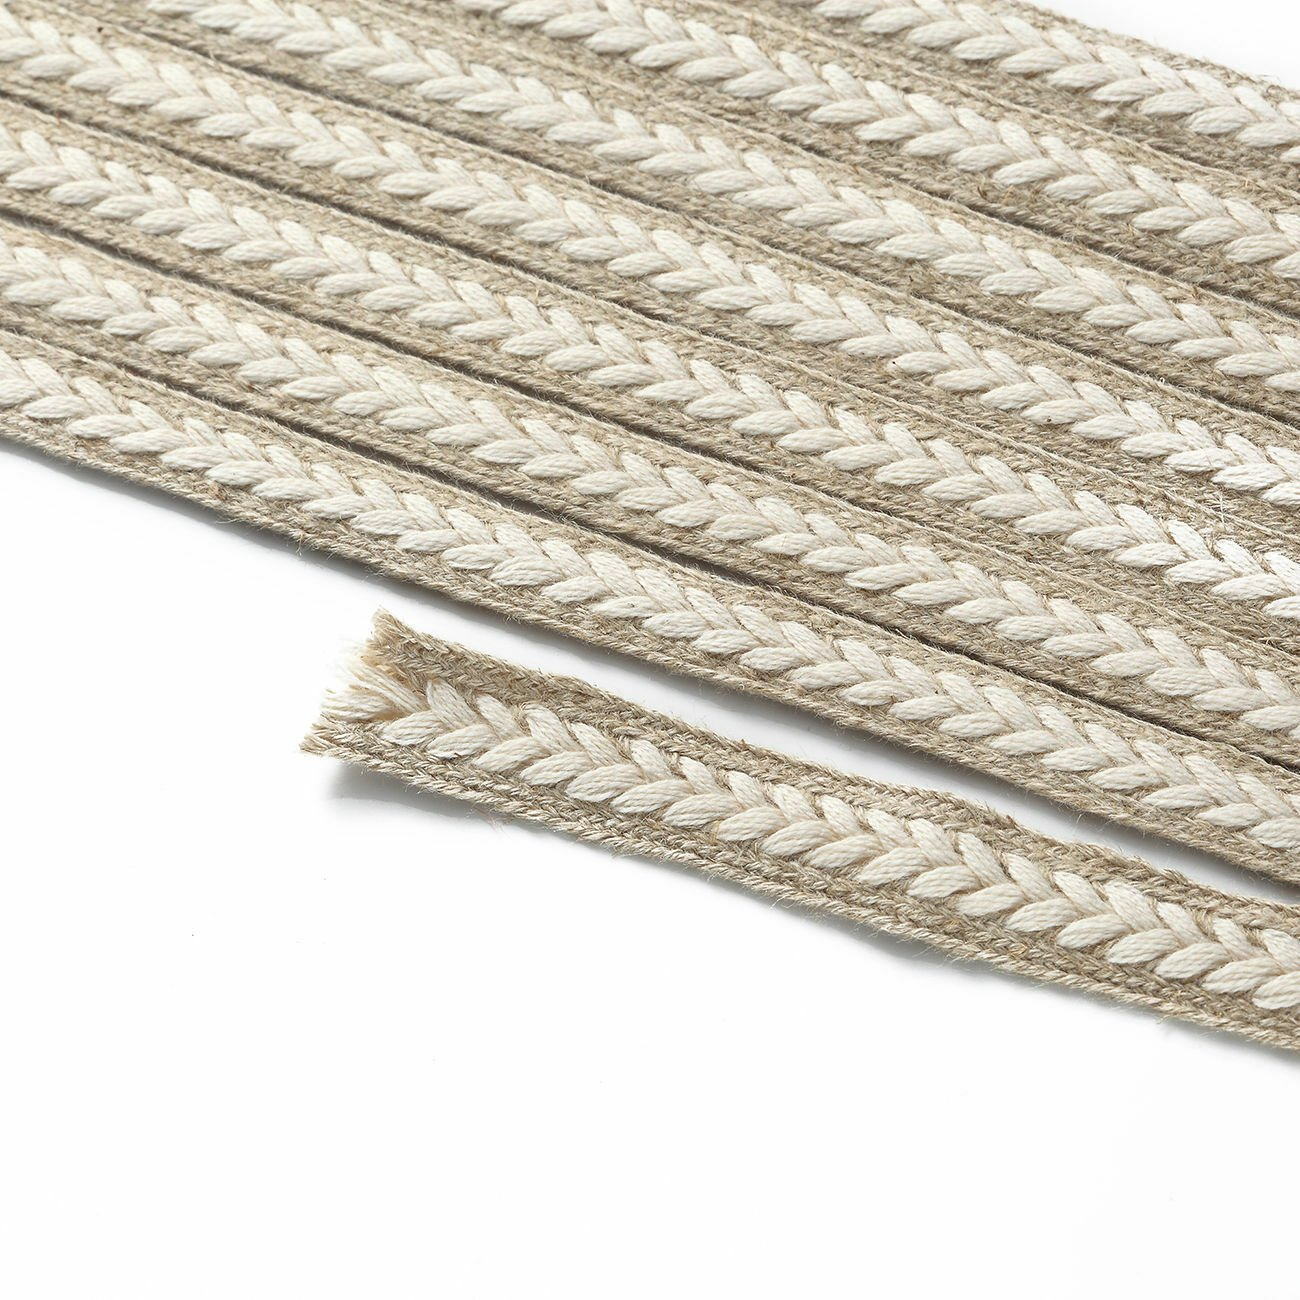 Neotrims Jute & Cotton Platted Rope Style Trimming Ribbon Braid,10mm Costume